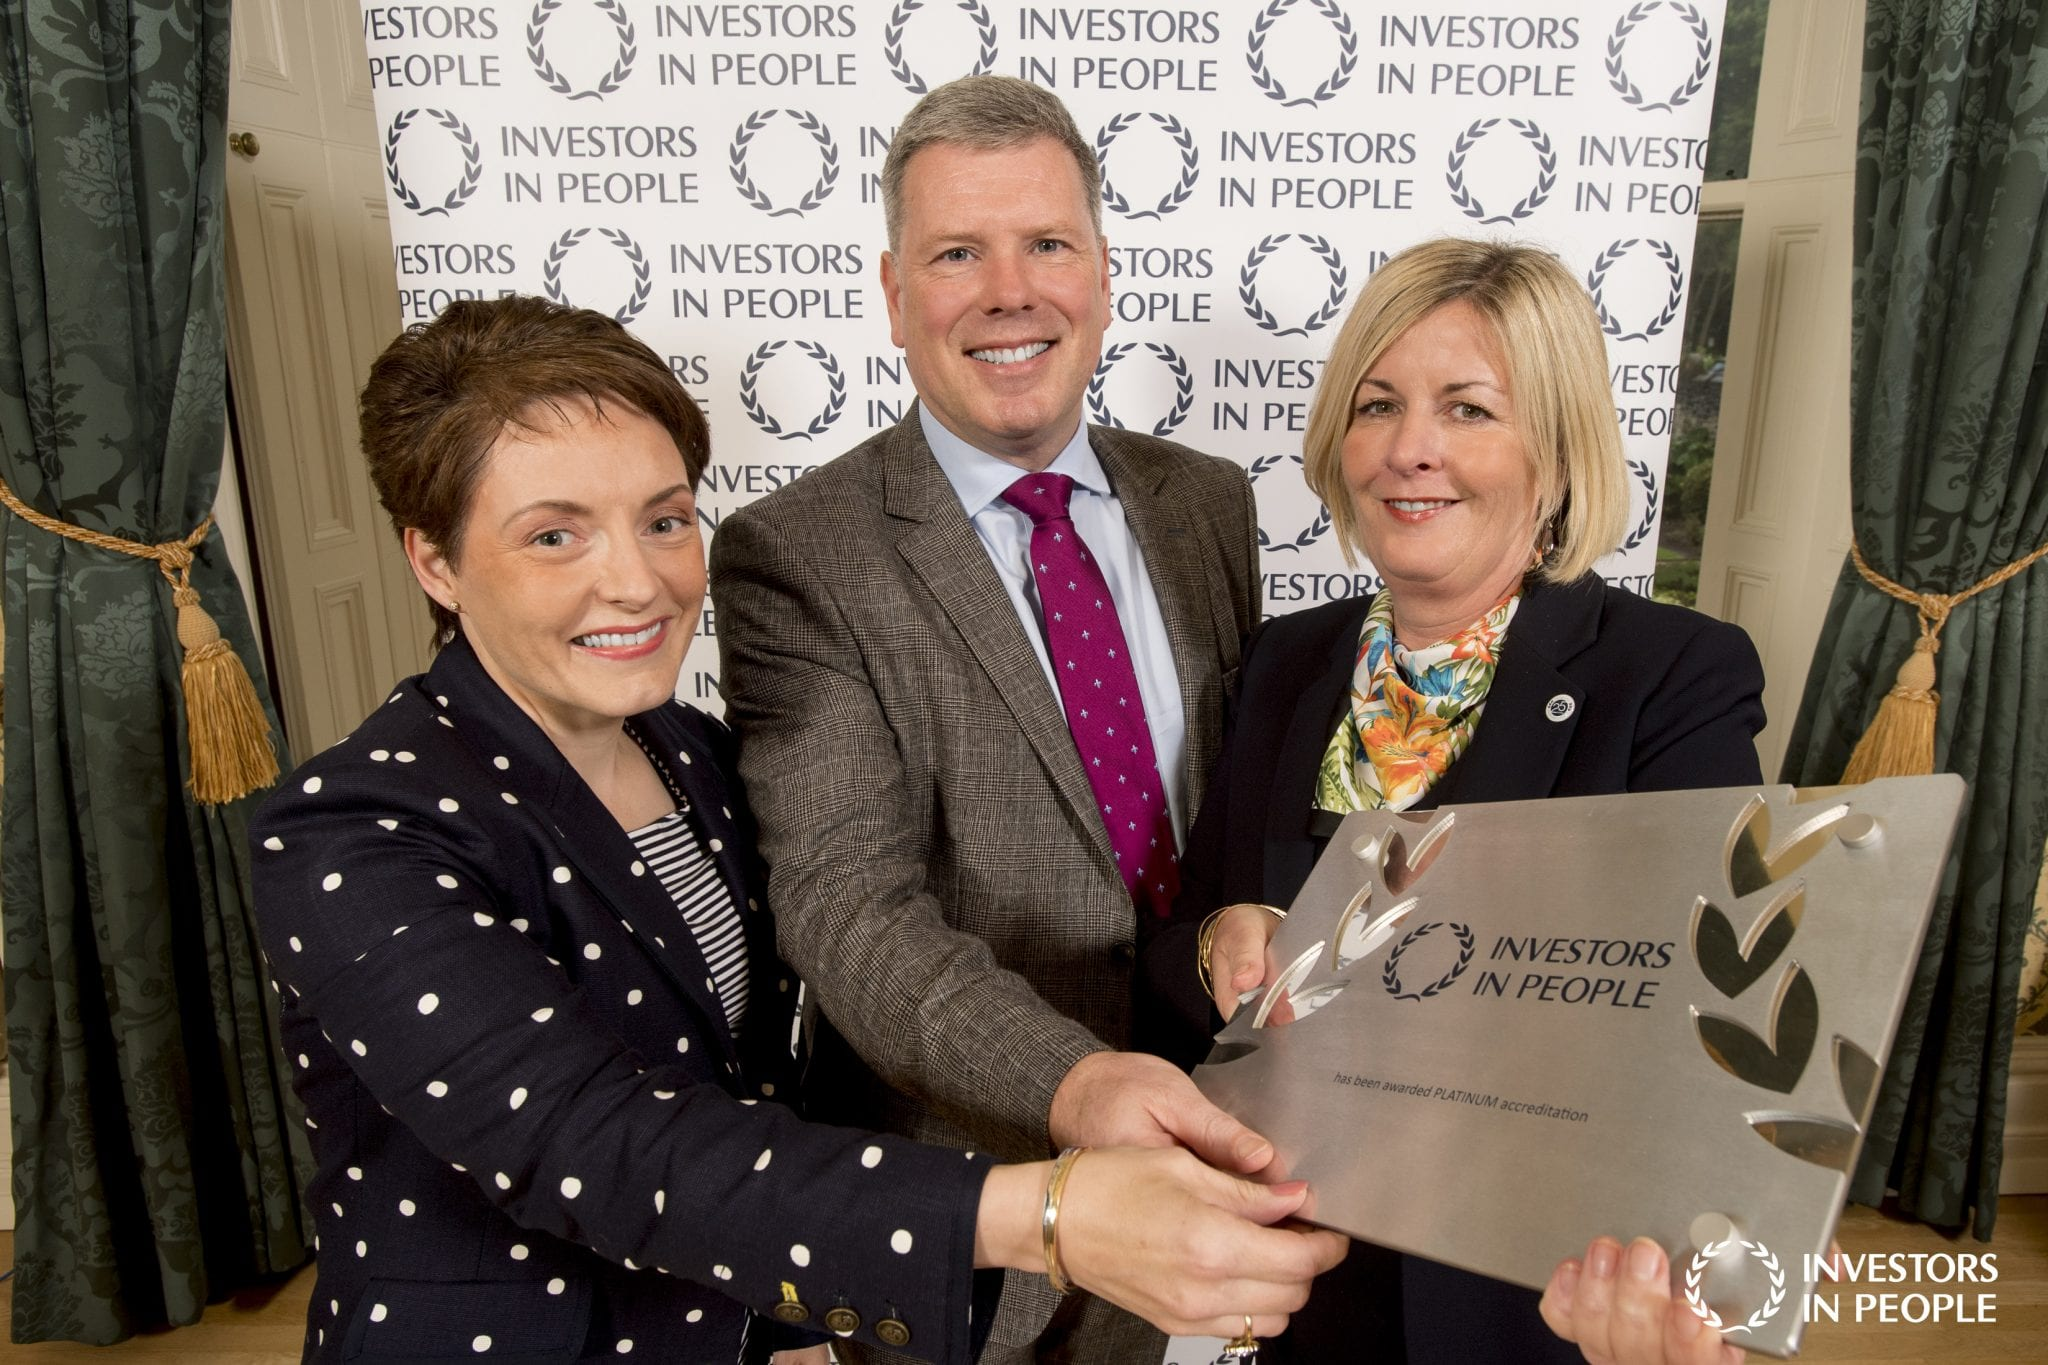 First UK Construction company to achieve Investors in People Platinum